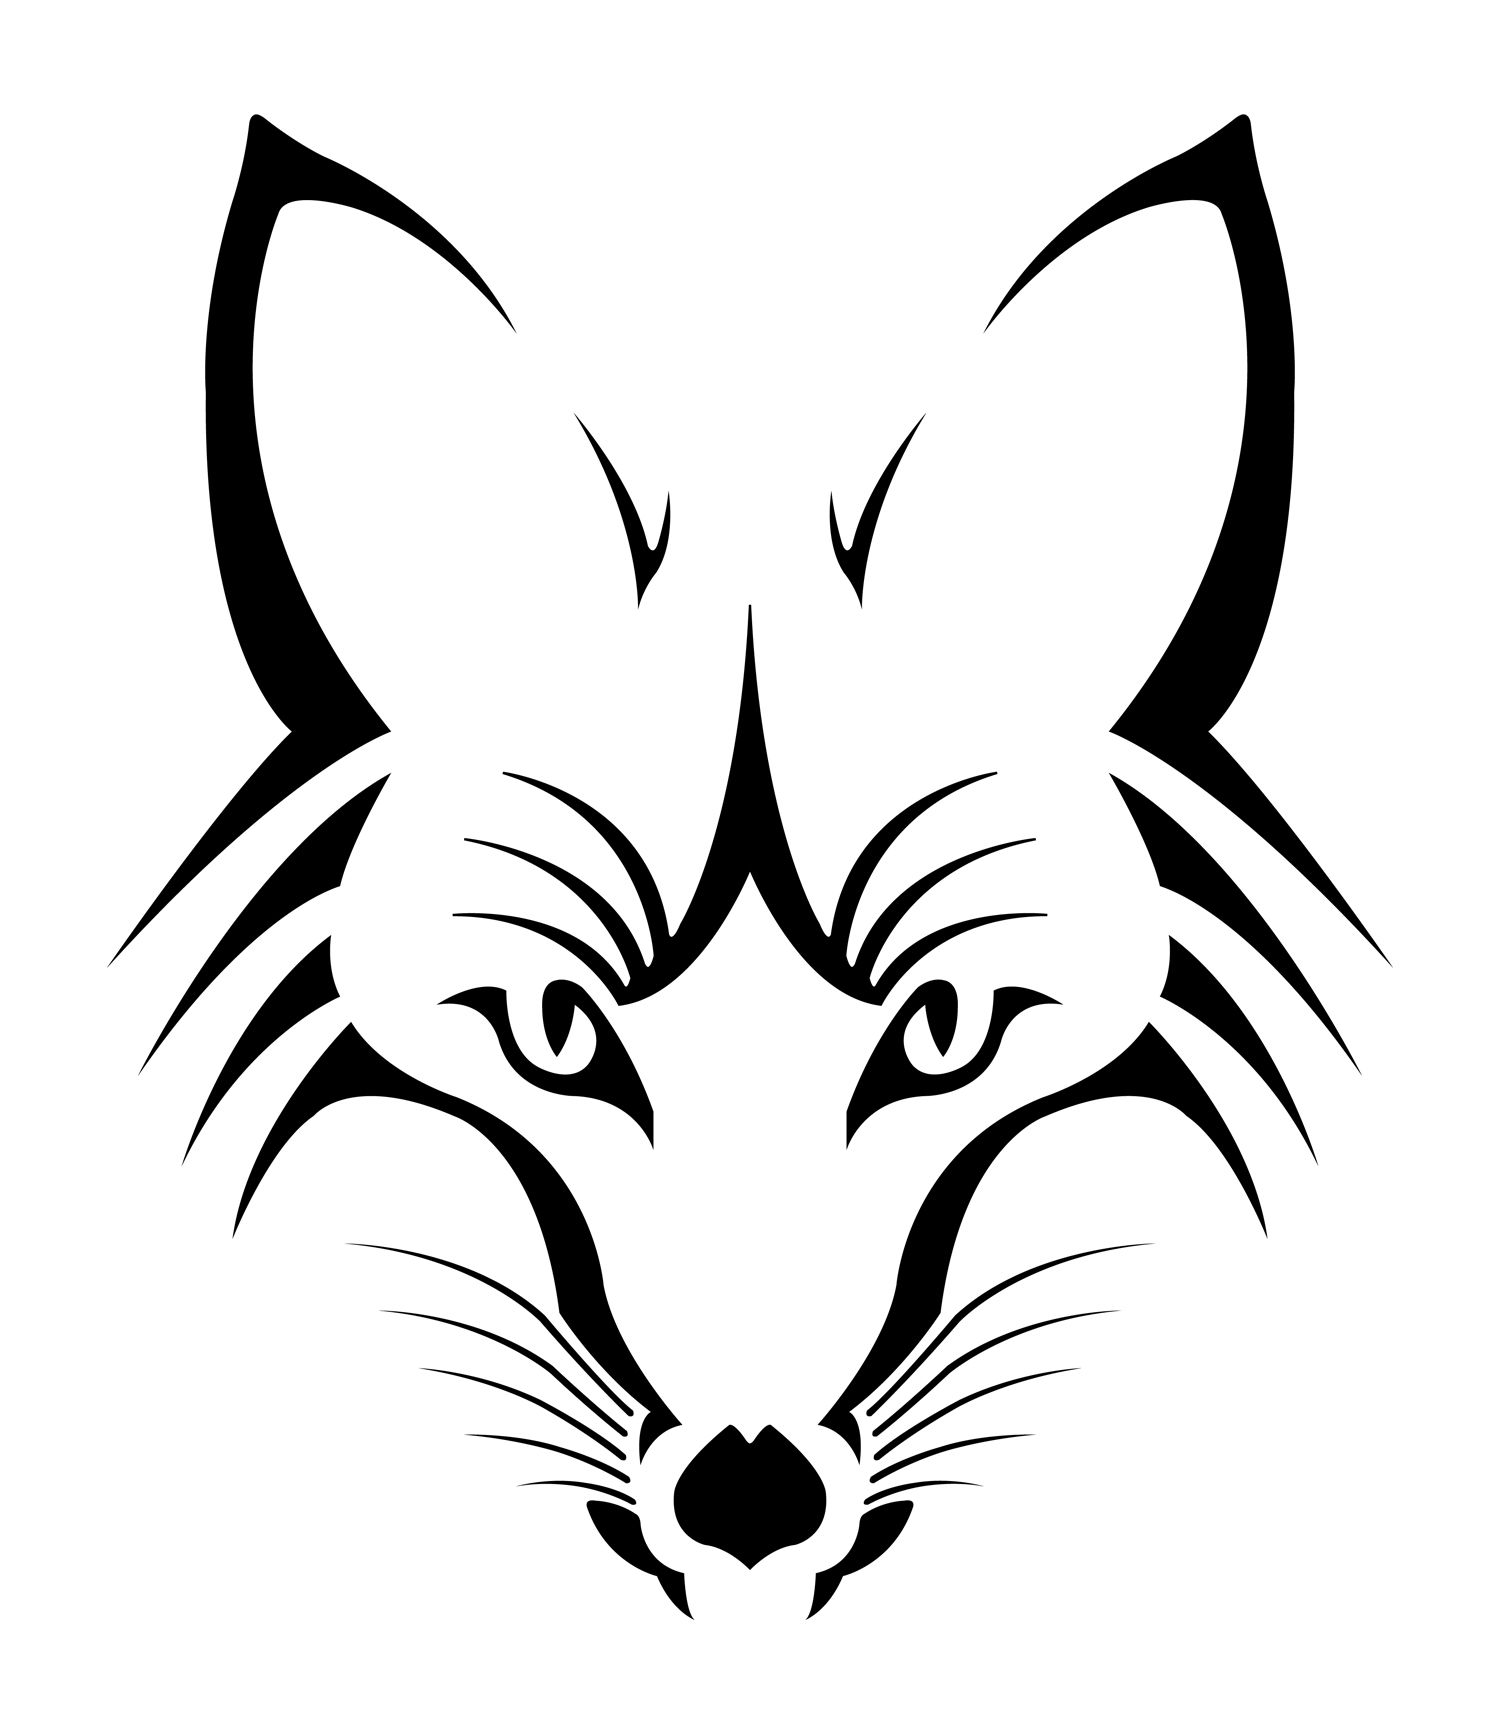 Spirit Animal Symbolism And Meanings